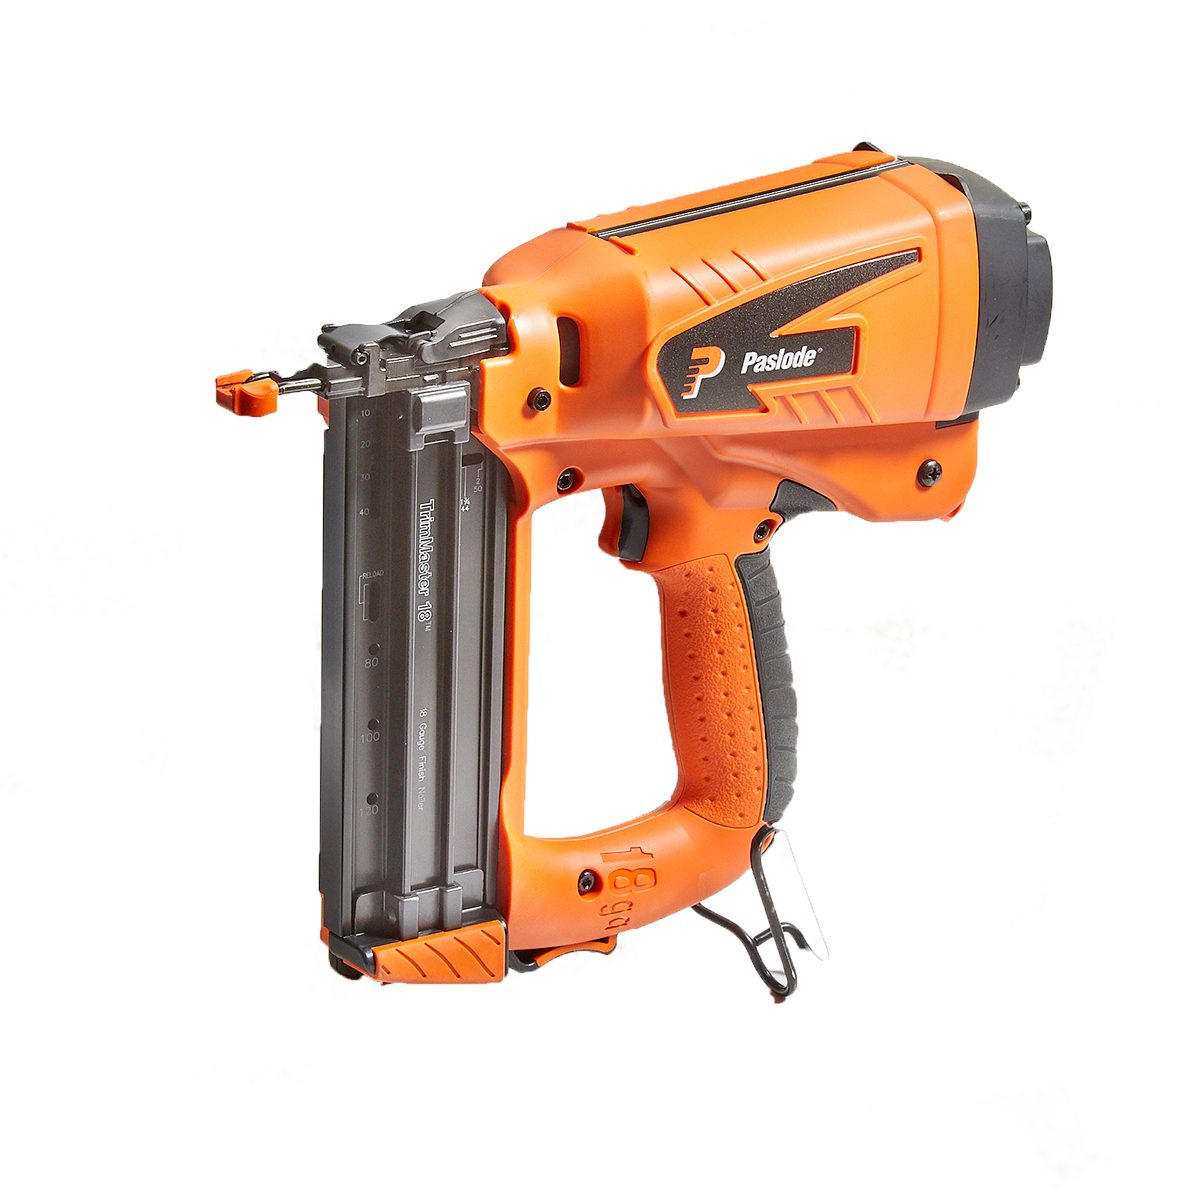 Paslode Brad Nailer | Construction Pro Tips